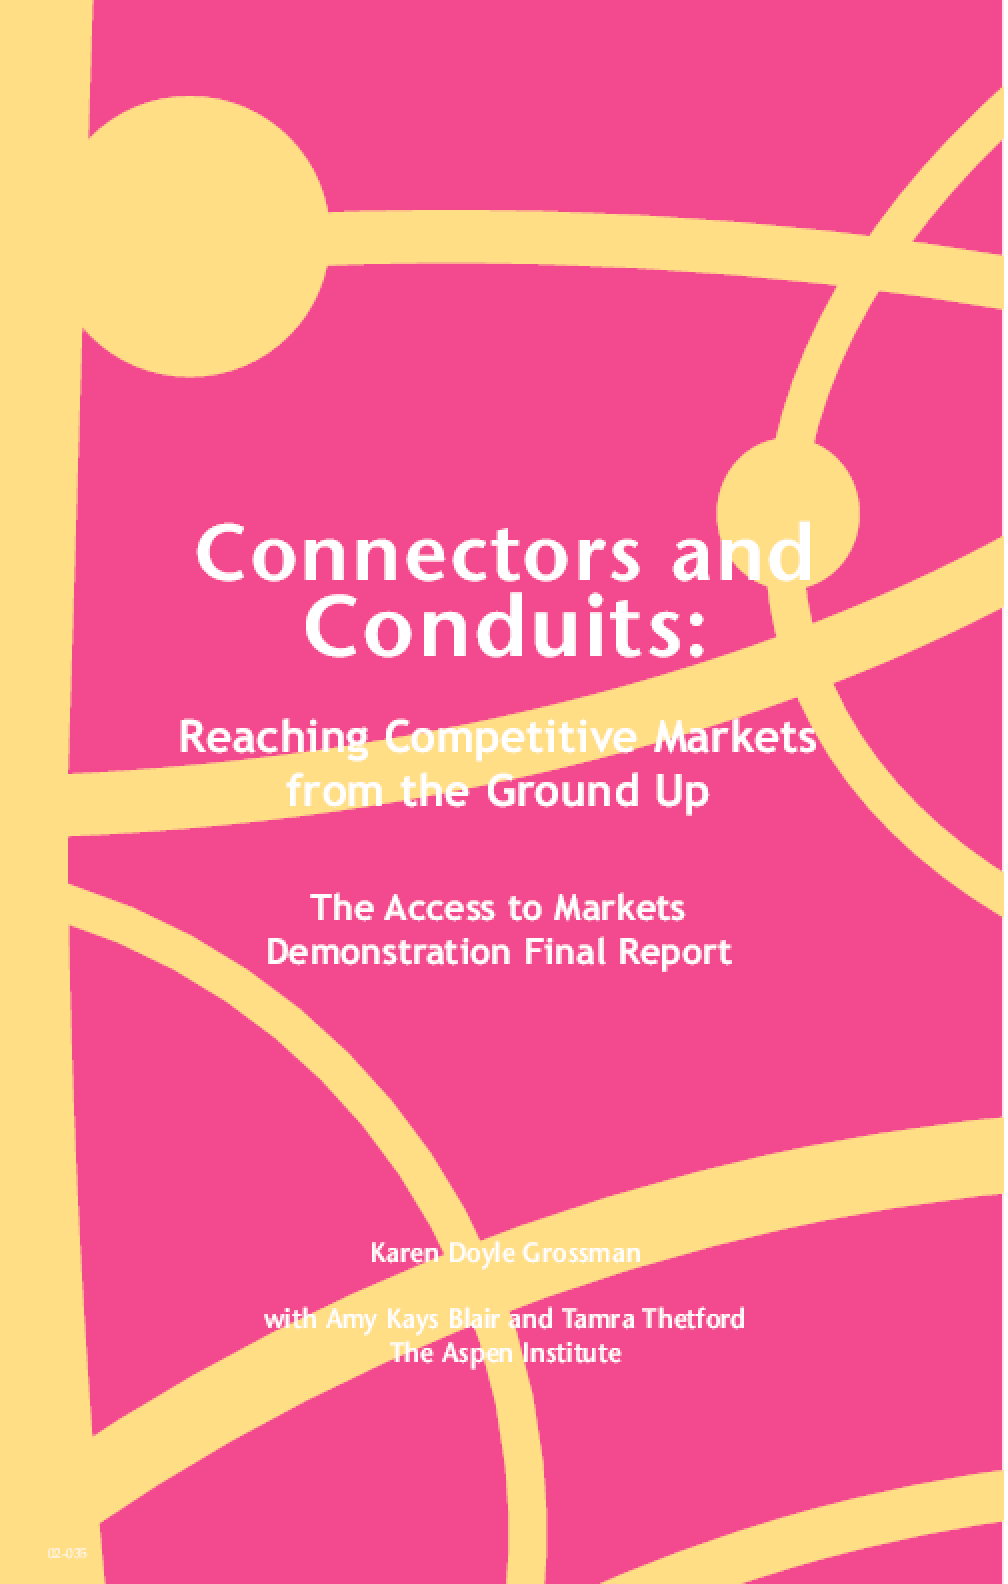 Connectors and Conduits: Reaching Competitive Markets From the Ground Up